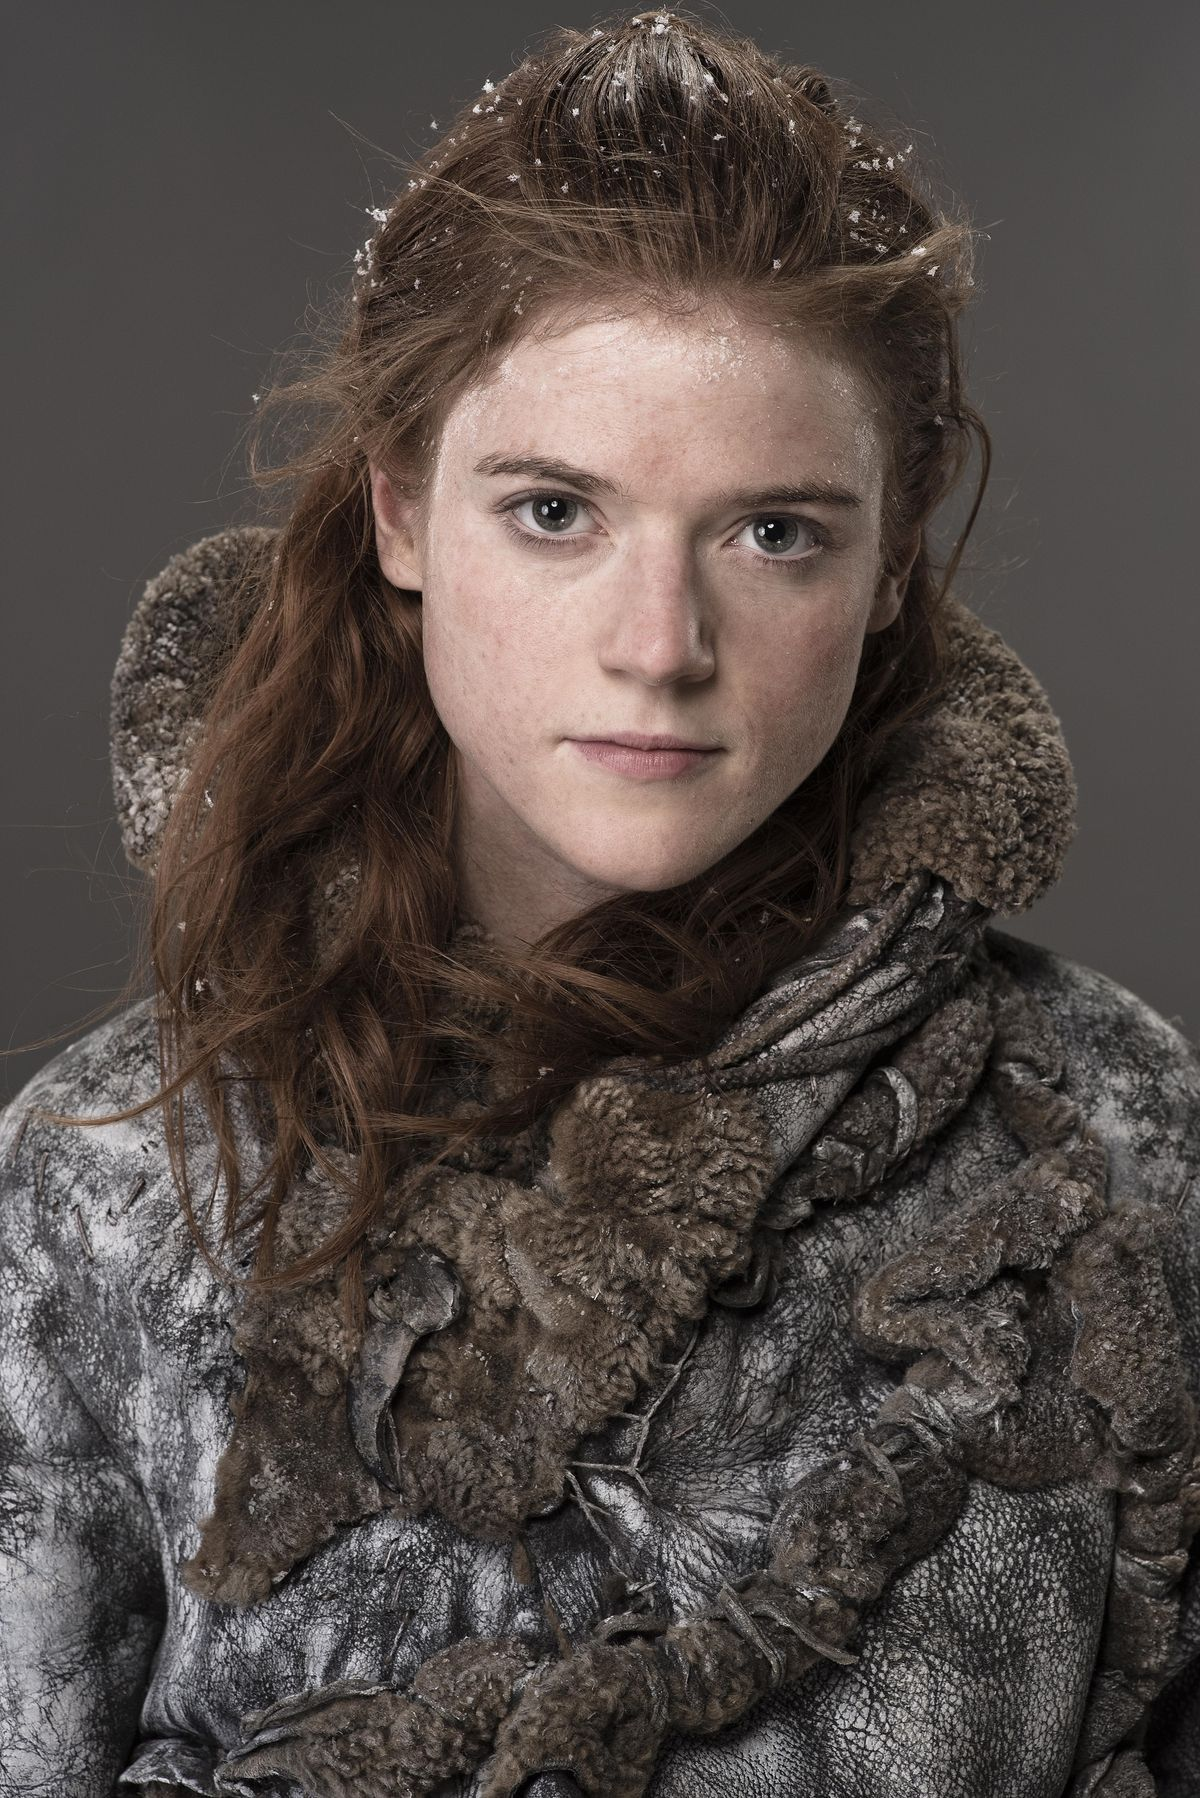 Pin By Carla Magliano On Characters Stories Rose Leslie Game Of Thrones Cast Red Hair